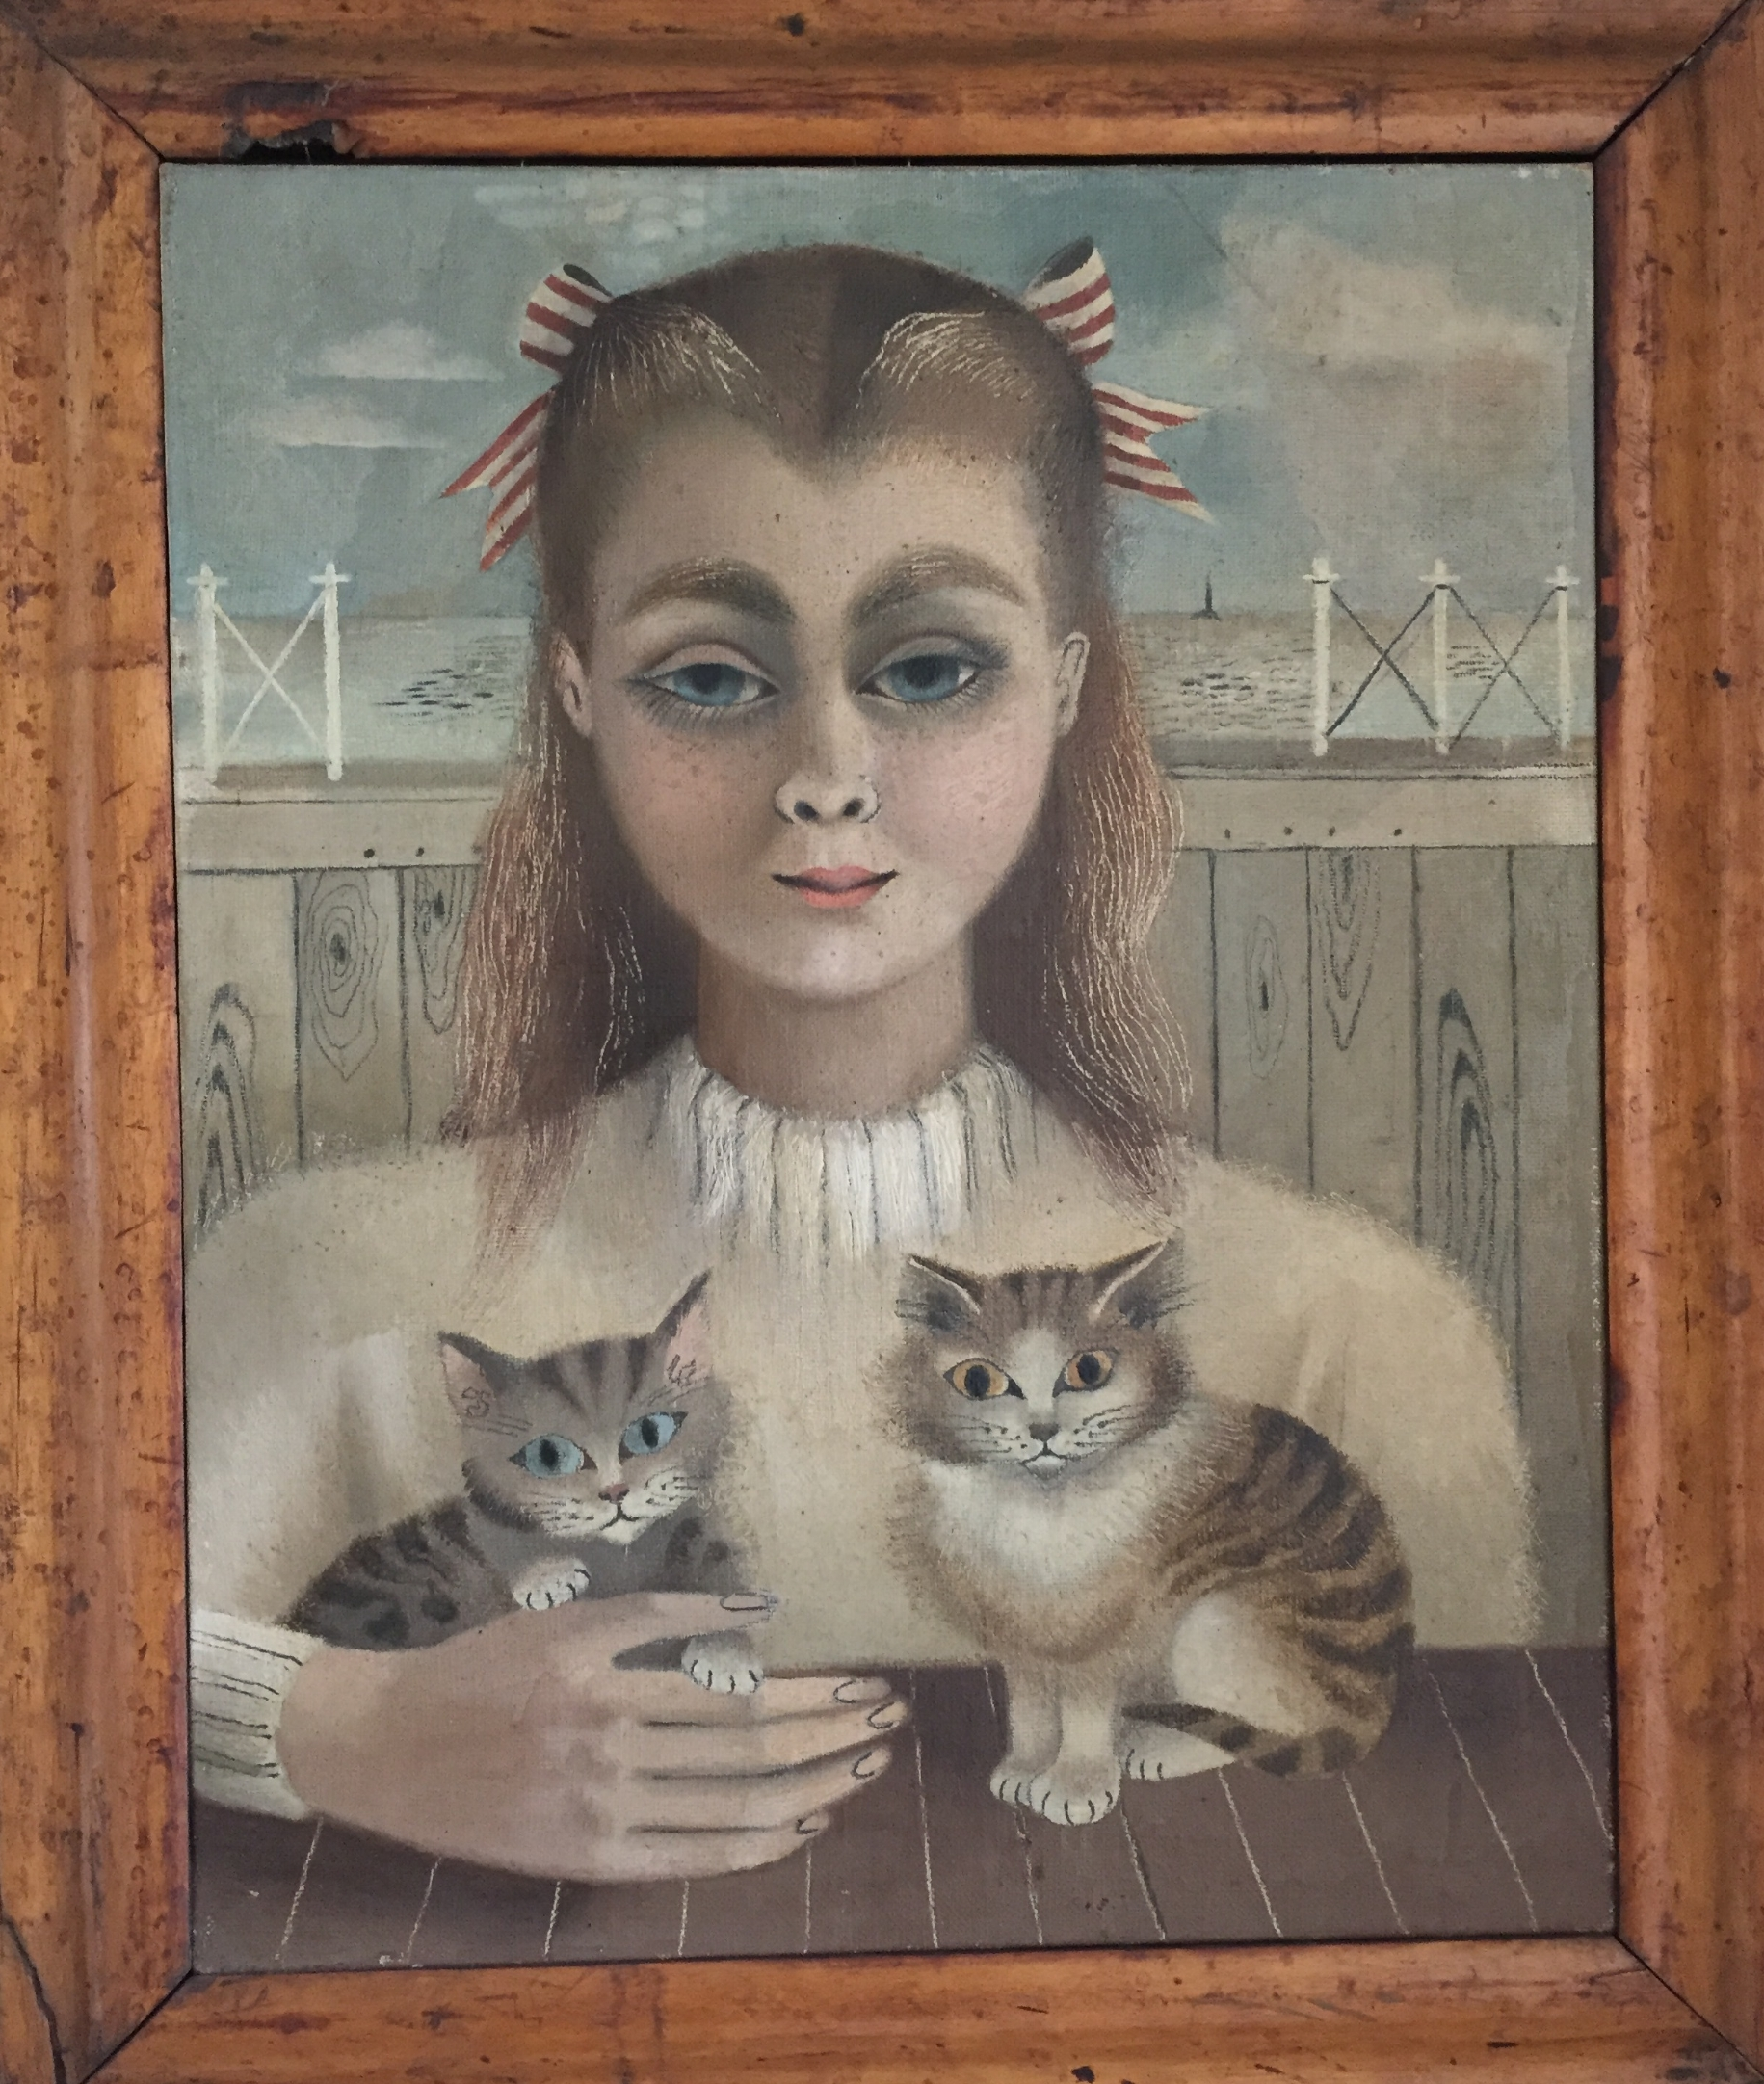 The Cat Girl - Shown with the National Society of Painters, Sculptors and Wood Engraversoil on canvas 50 x 40 cmsOne of several paintings of girls or very young women, each with an edge of eerie surrealism. Girl and kittens gaze at the viewer with disconcertingly similar eyes.Suzanne Cooper's family remark that the girl's strongly arched eyebrows and the double curve of her hairline make this a disguised portrait of Michael Franklin, Cooper's husband.